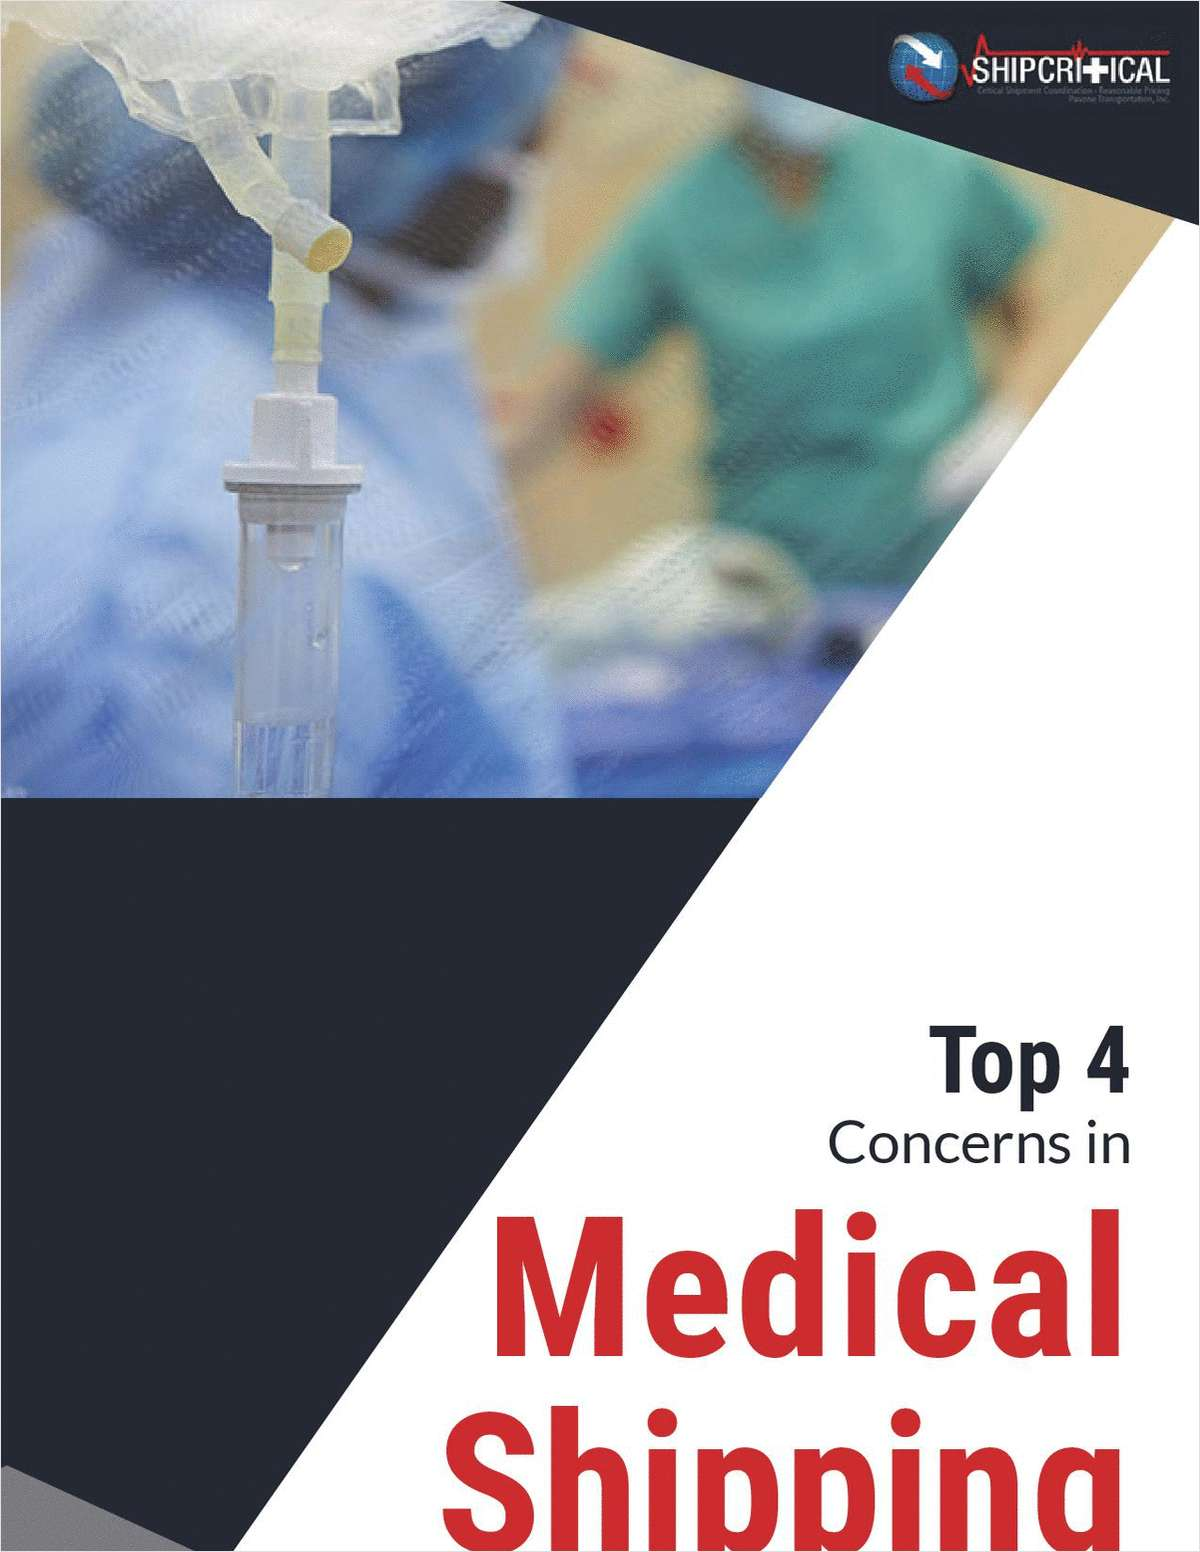 Top 4 Concerns in Medical Shipping and How to Address Them